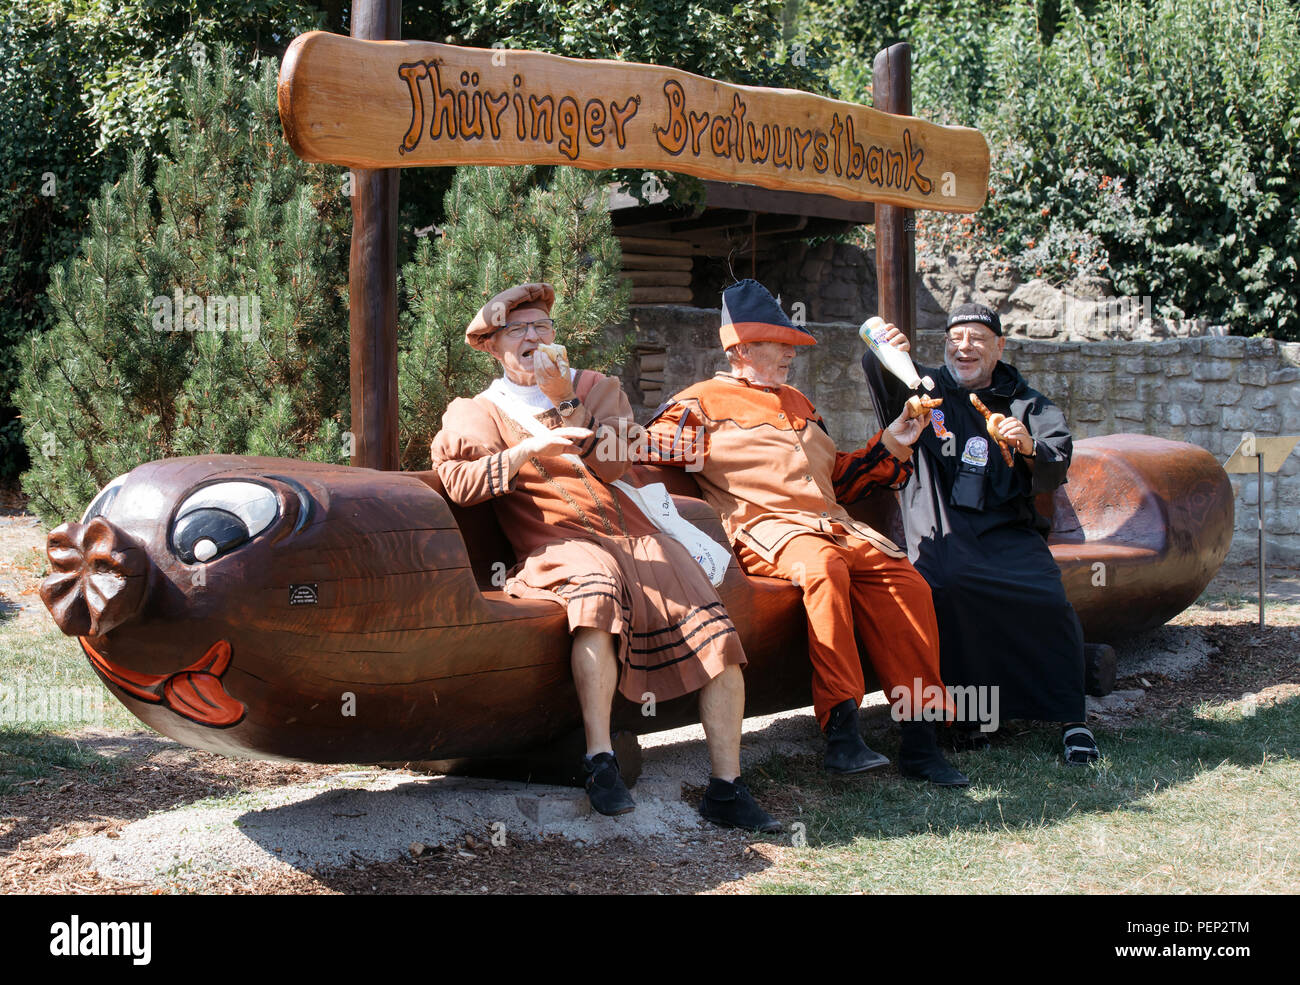 Holzhausen, Germany. 16th Aug, 2018. The traditional figures (l-r) Bernd Knierenschild, Michael Seever and Peter Janke enjoy a sausage on the new Bratwurst bench in the Bratwurstmuseum. Fans of this Thuringian speciality intend to celebrate the 'International Day of the Bratwurst' with new attractions in the Bratwurst Museum every year from today onwards. Credit: Arifoto Ug/Michael Reichel/dpa-Zentralbild/dpa/Alamy Live News Stock Photo